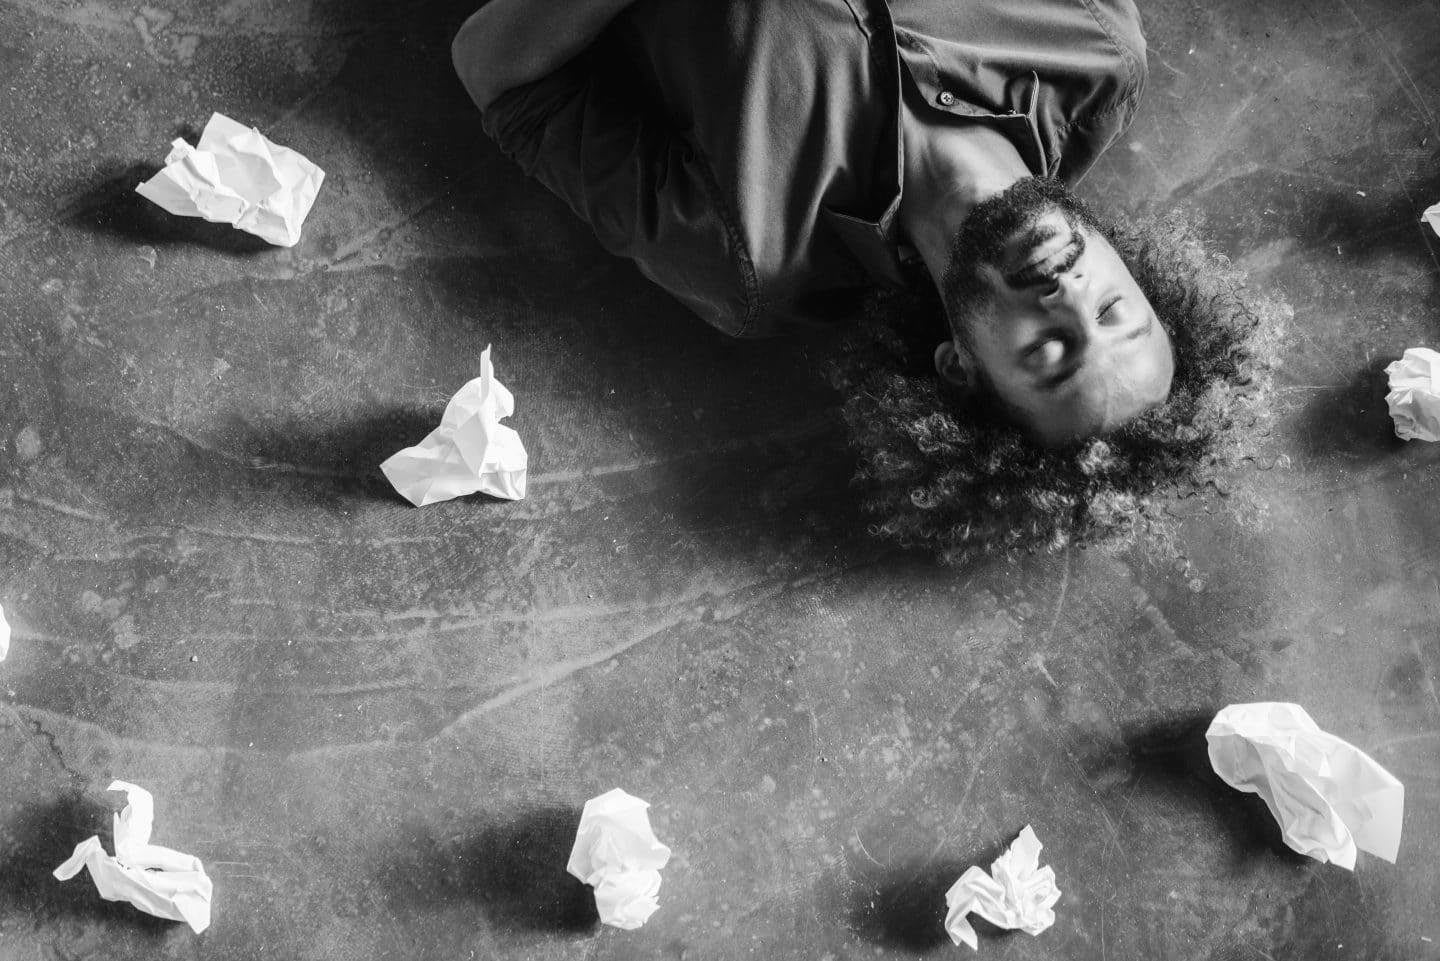 Man lying on floor surrounded by balls of paper, brainstorming, thinking, creative, ideas, GamePlan A